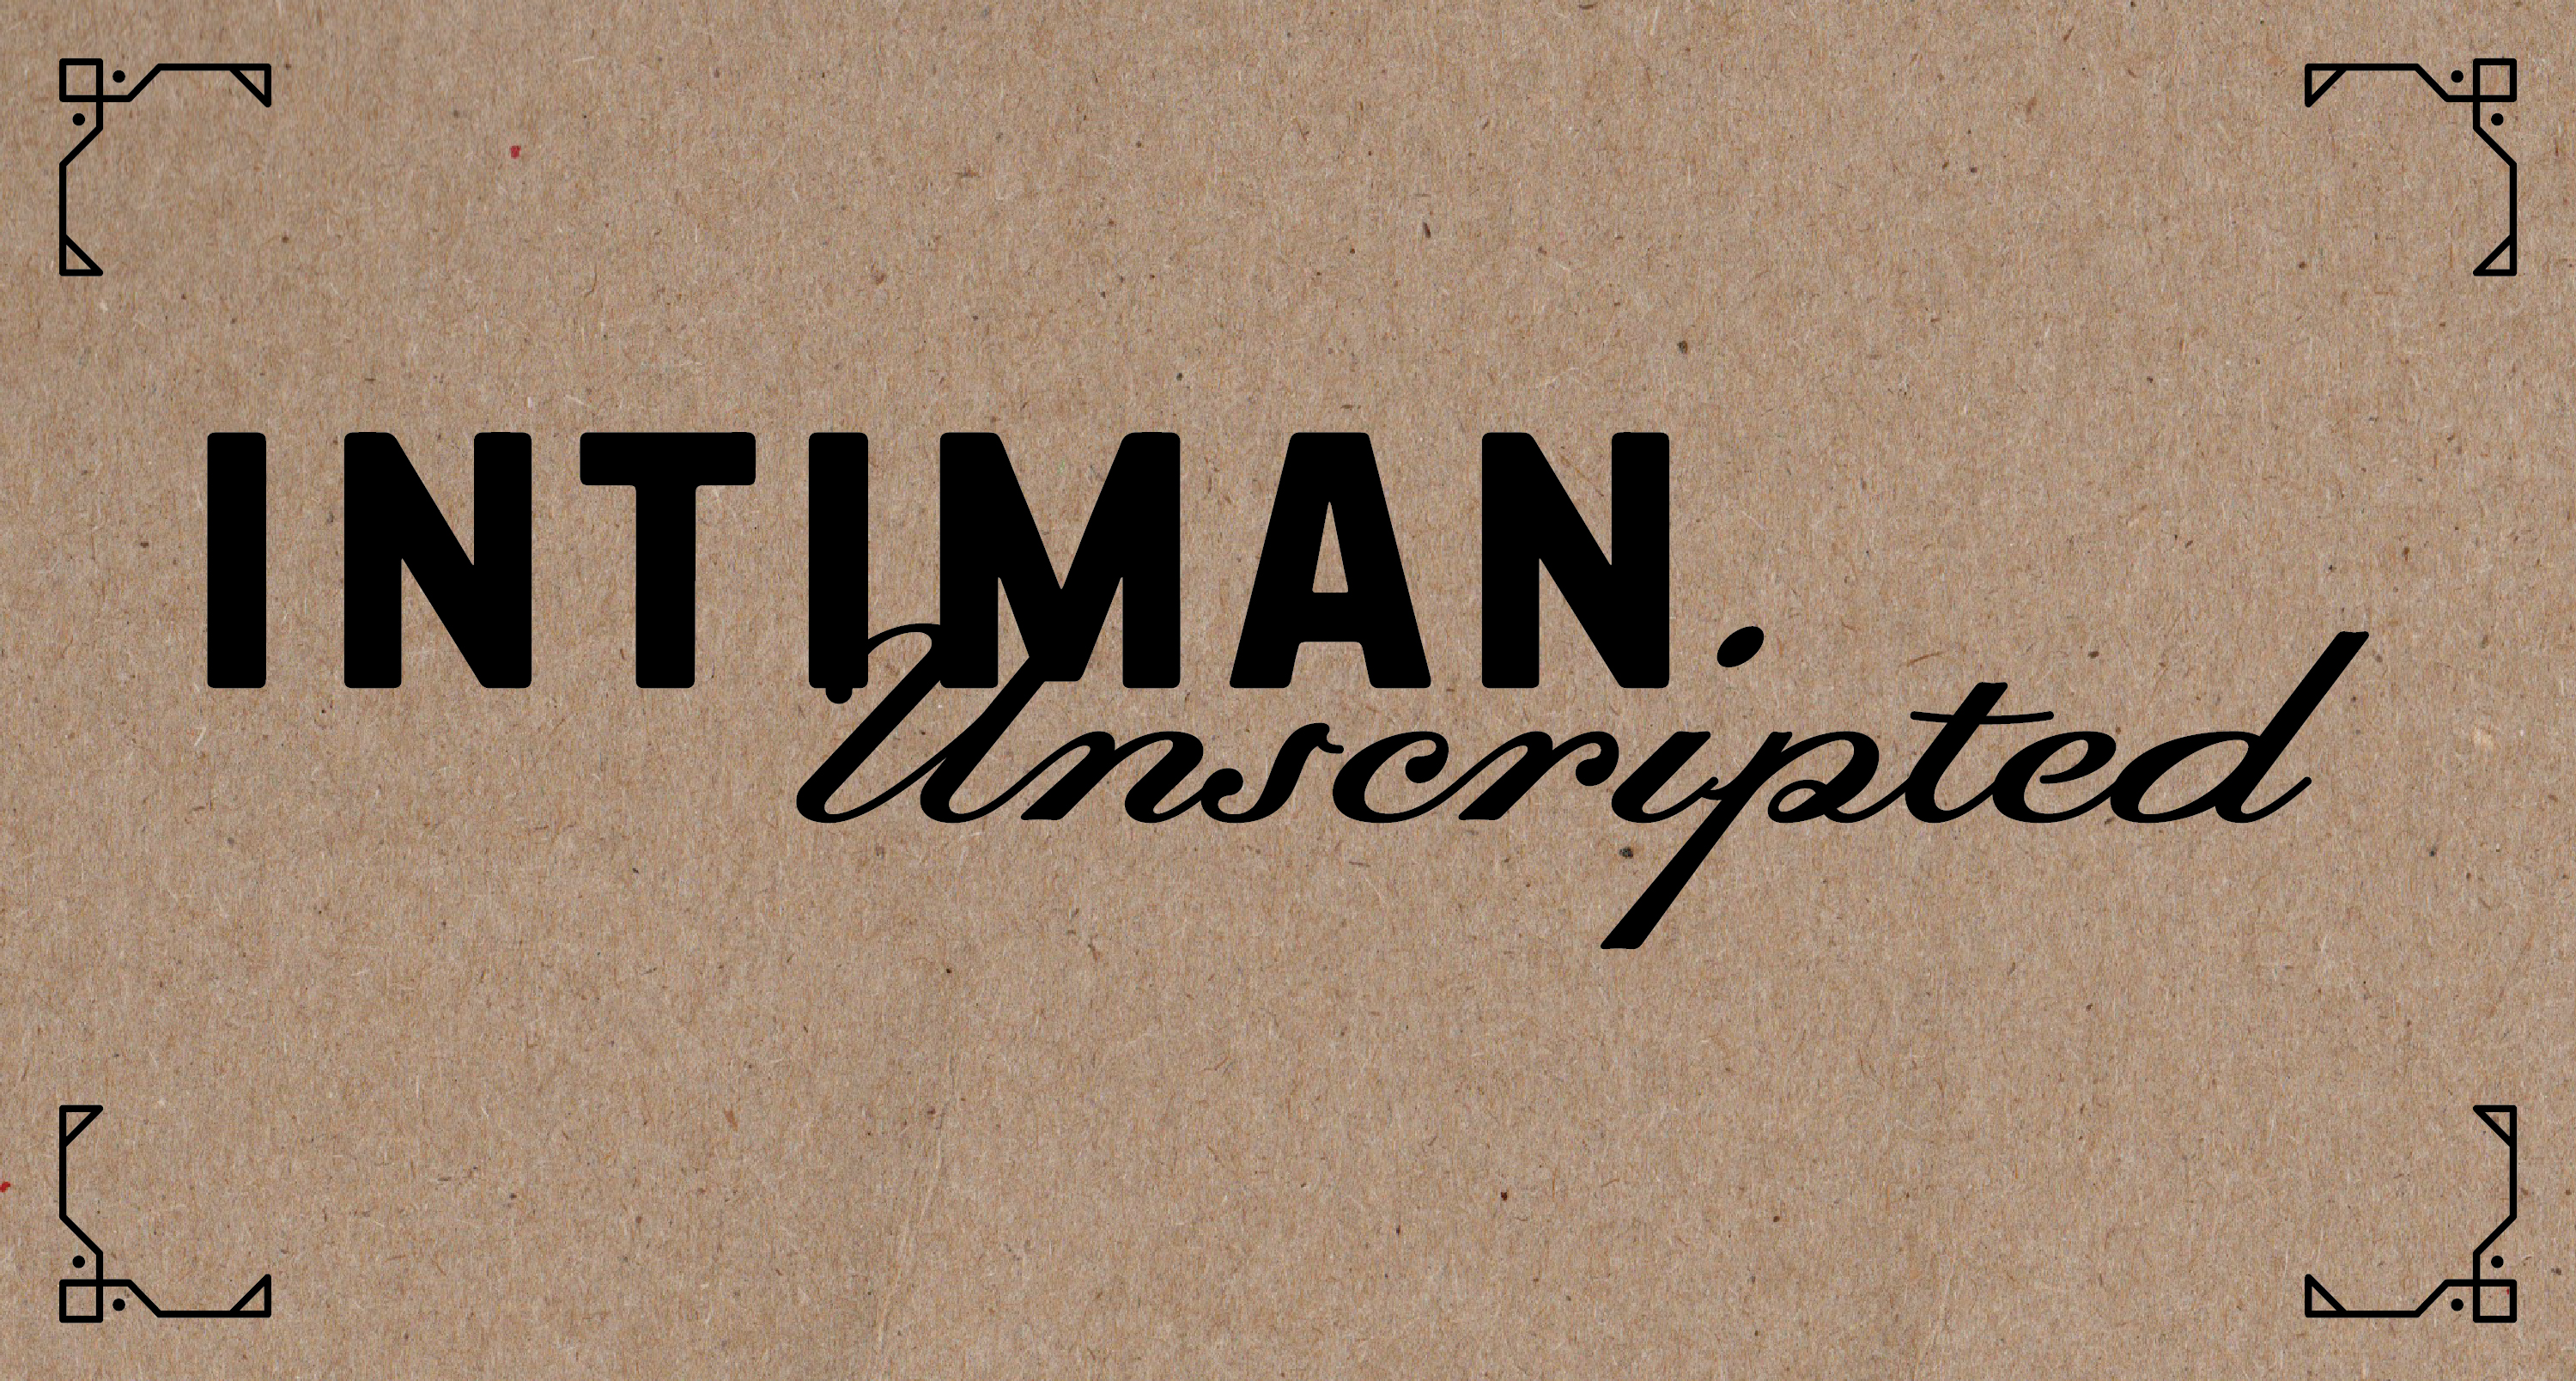 IntimanUnscriptedTitleTreatment-03a-03-1